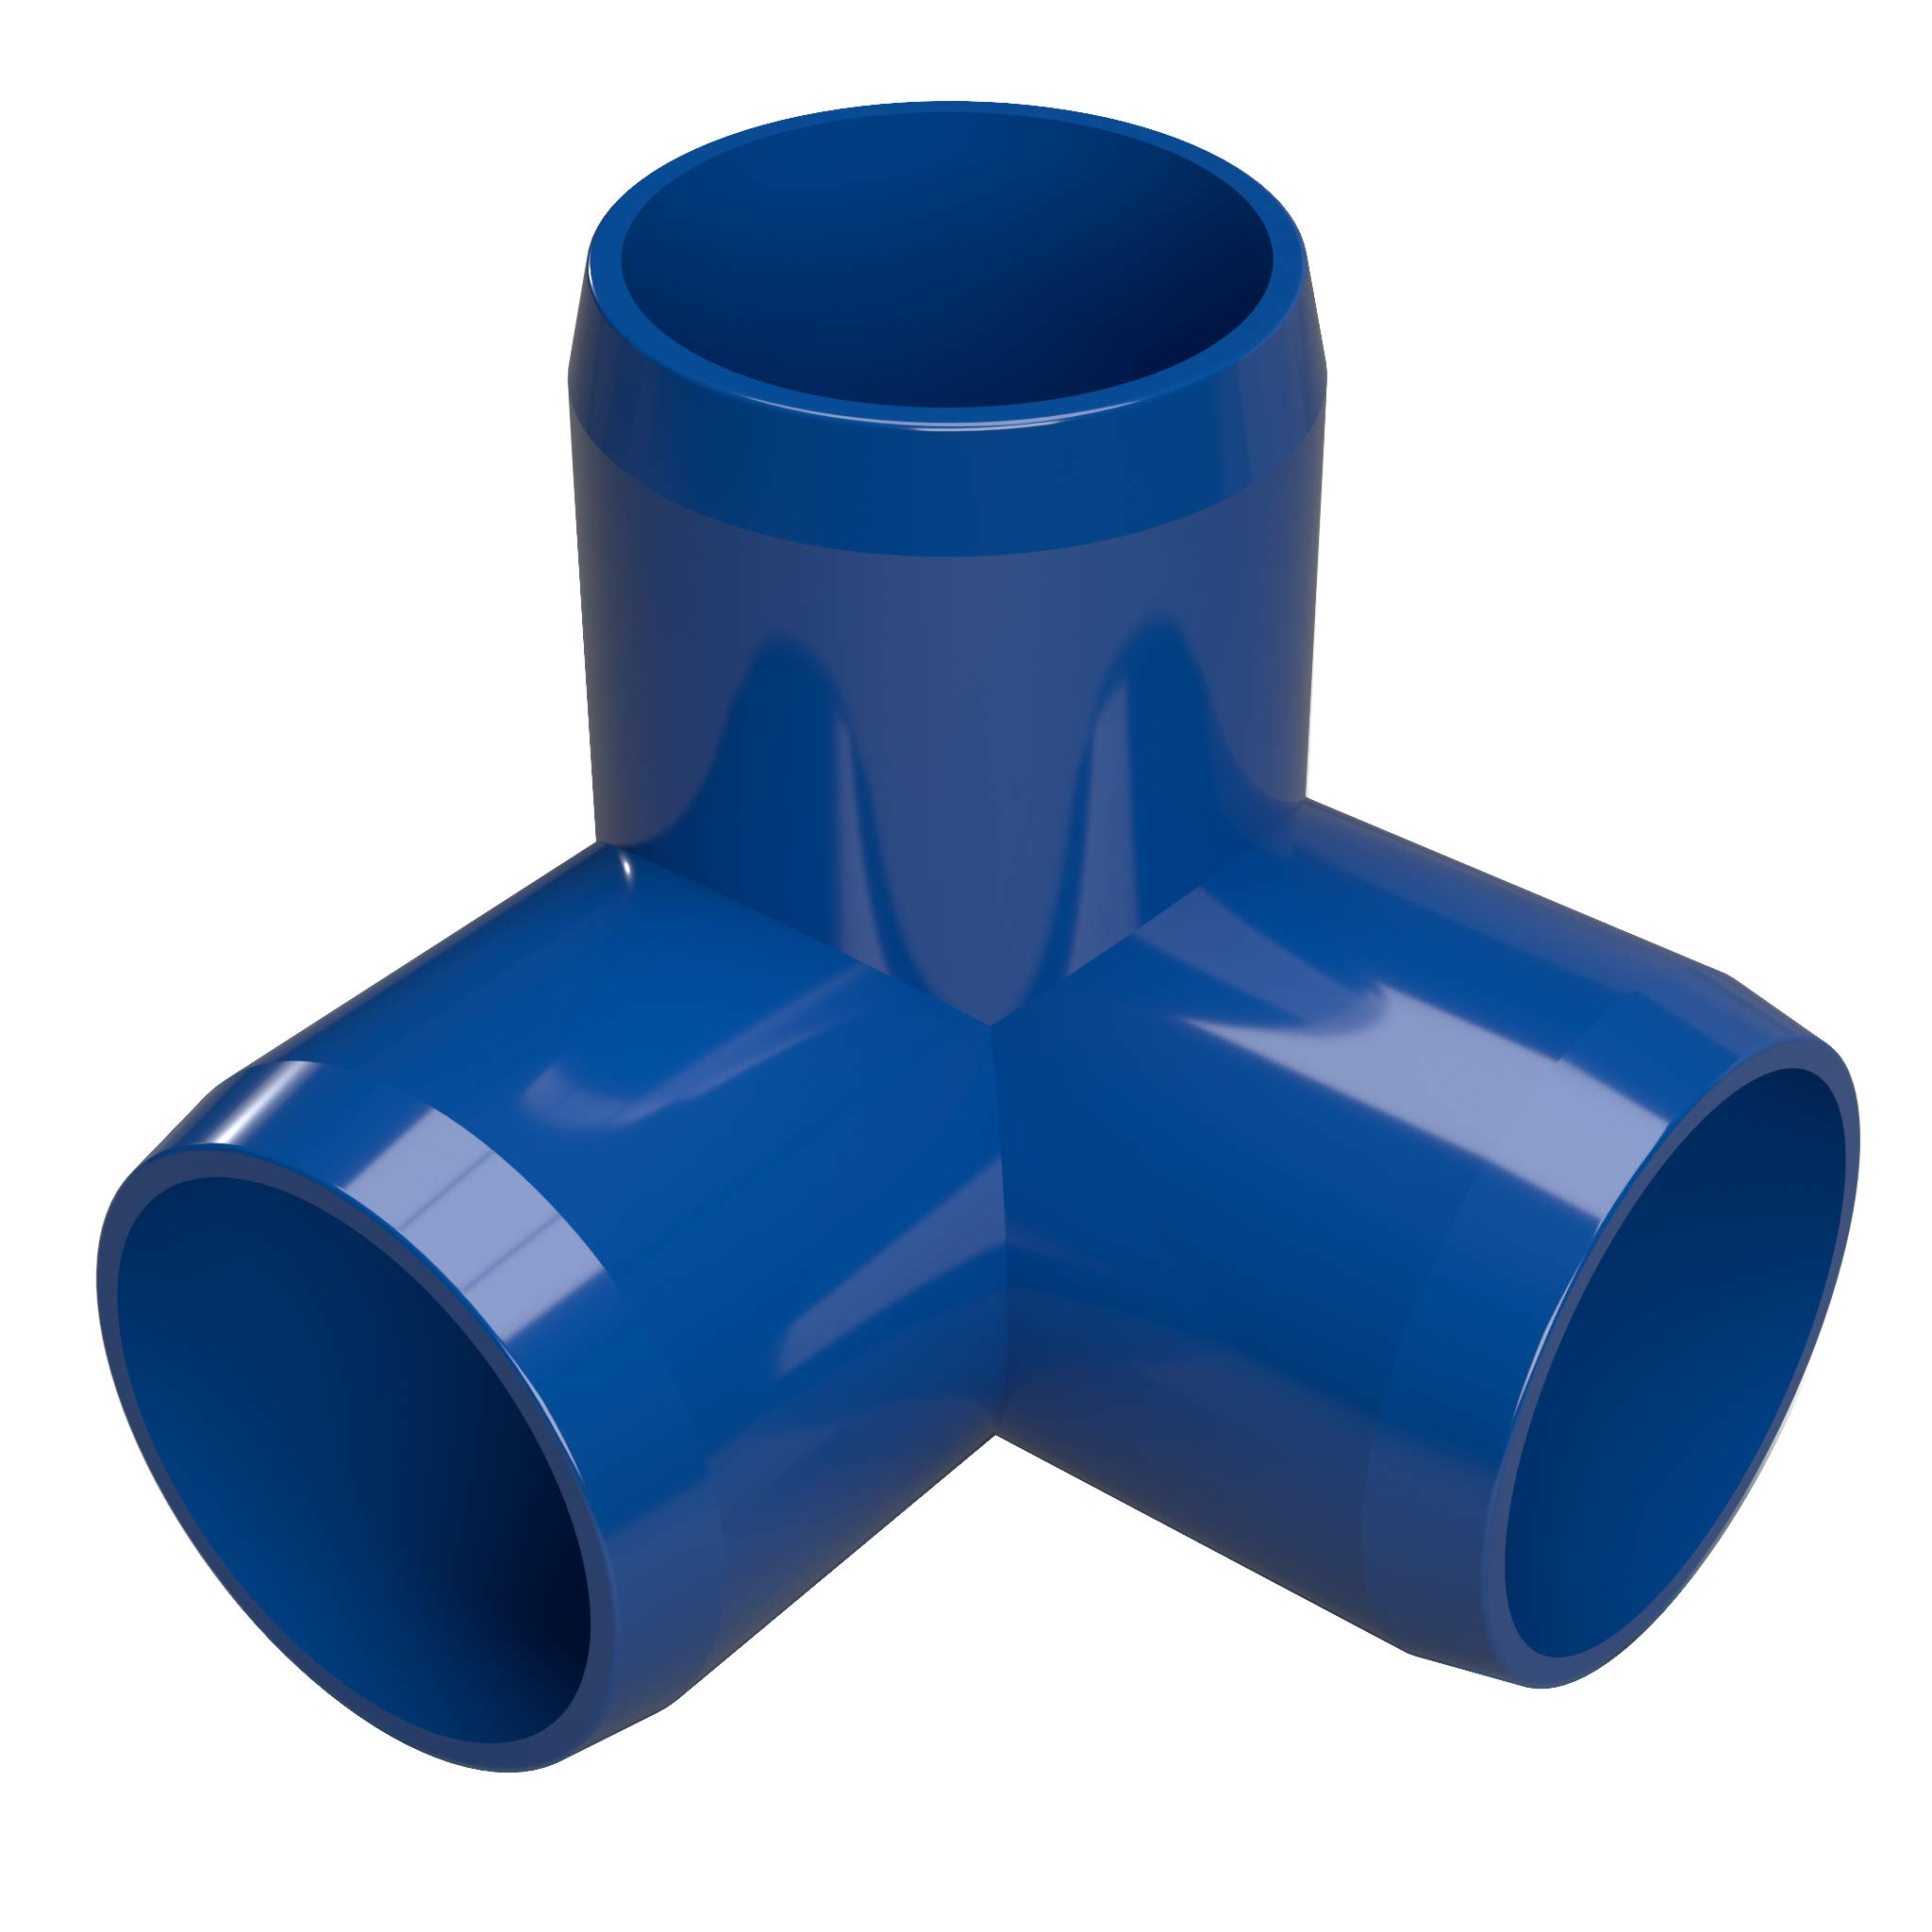 FORMUFIT F1143WE-BL-4 3-Way Elbow PVC Fitting, Furniture Grade, 1-1/4'' Size, Blue (Pack of 4)